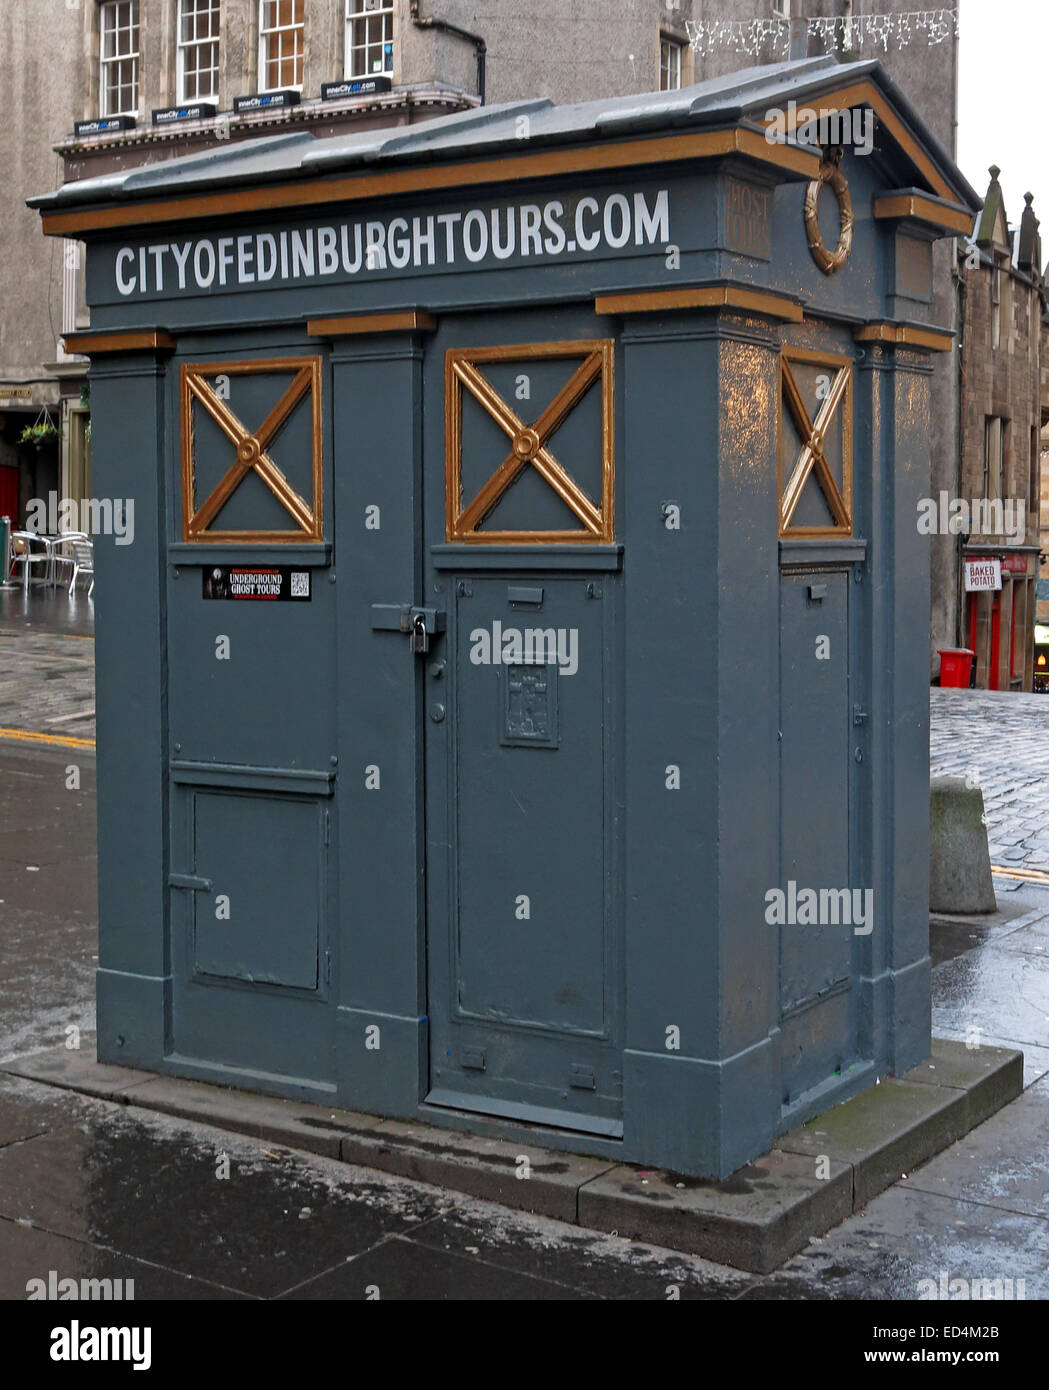 DrWho,Dr,Who,UK,cabin,unusual,tourist,tour,cityofedinburghtours,com,.com,cityofedinburghtours.com,grey,gray,interesting,Royal,Mile,Royalmile,classic,bbc,TV,capital,city,Tardiss,GoTonySmith,Buy Pictures of,Buy Images Of